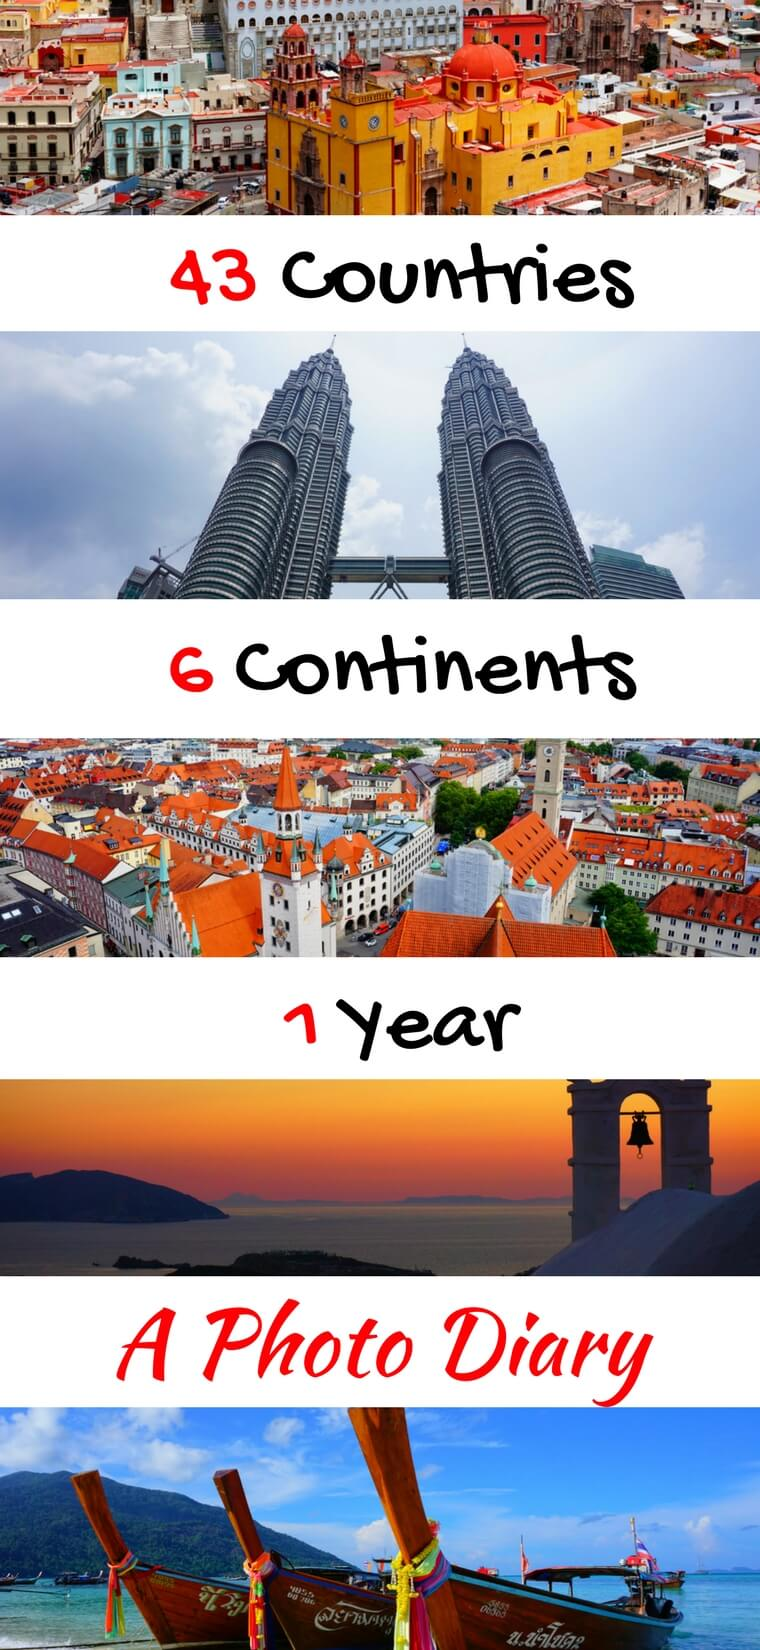 My favorite #travelphotos from one year spent traveling around the world. 43 countries, 6 continents, 1 year, and lots of amazing photos. #travel #travelpics